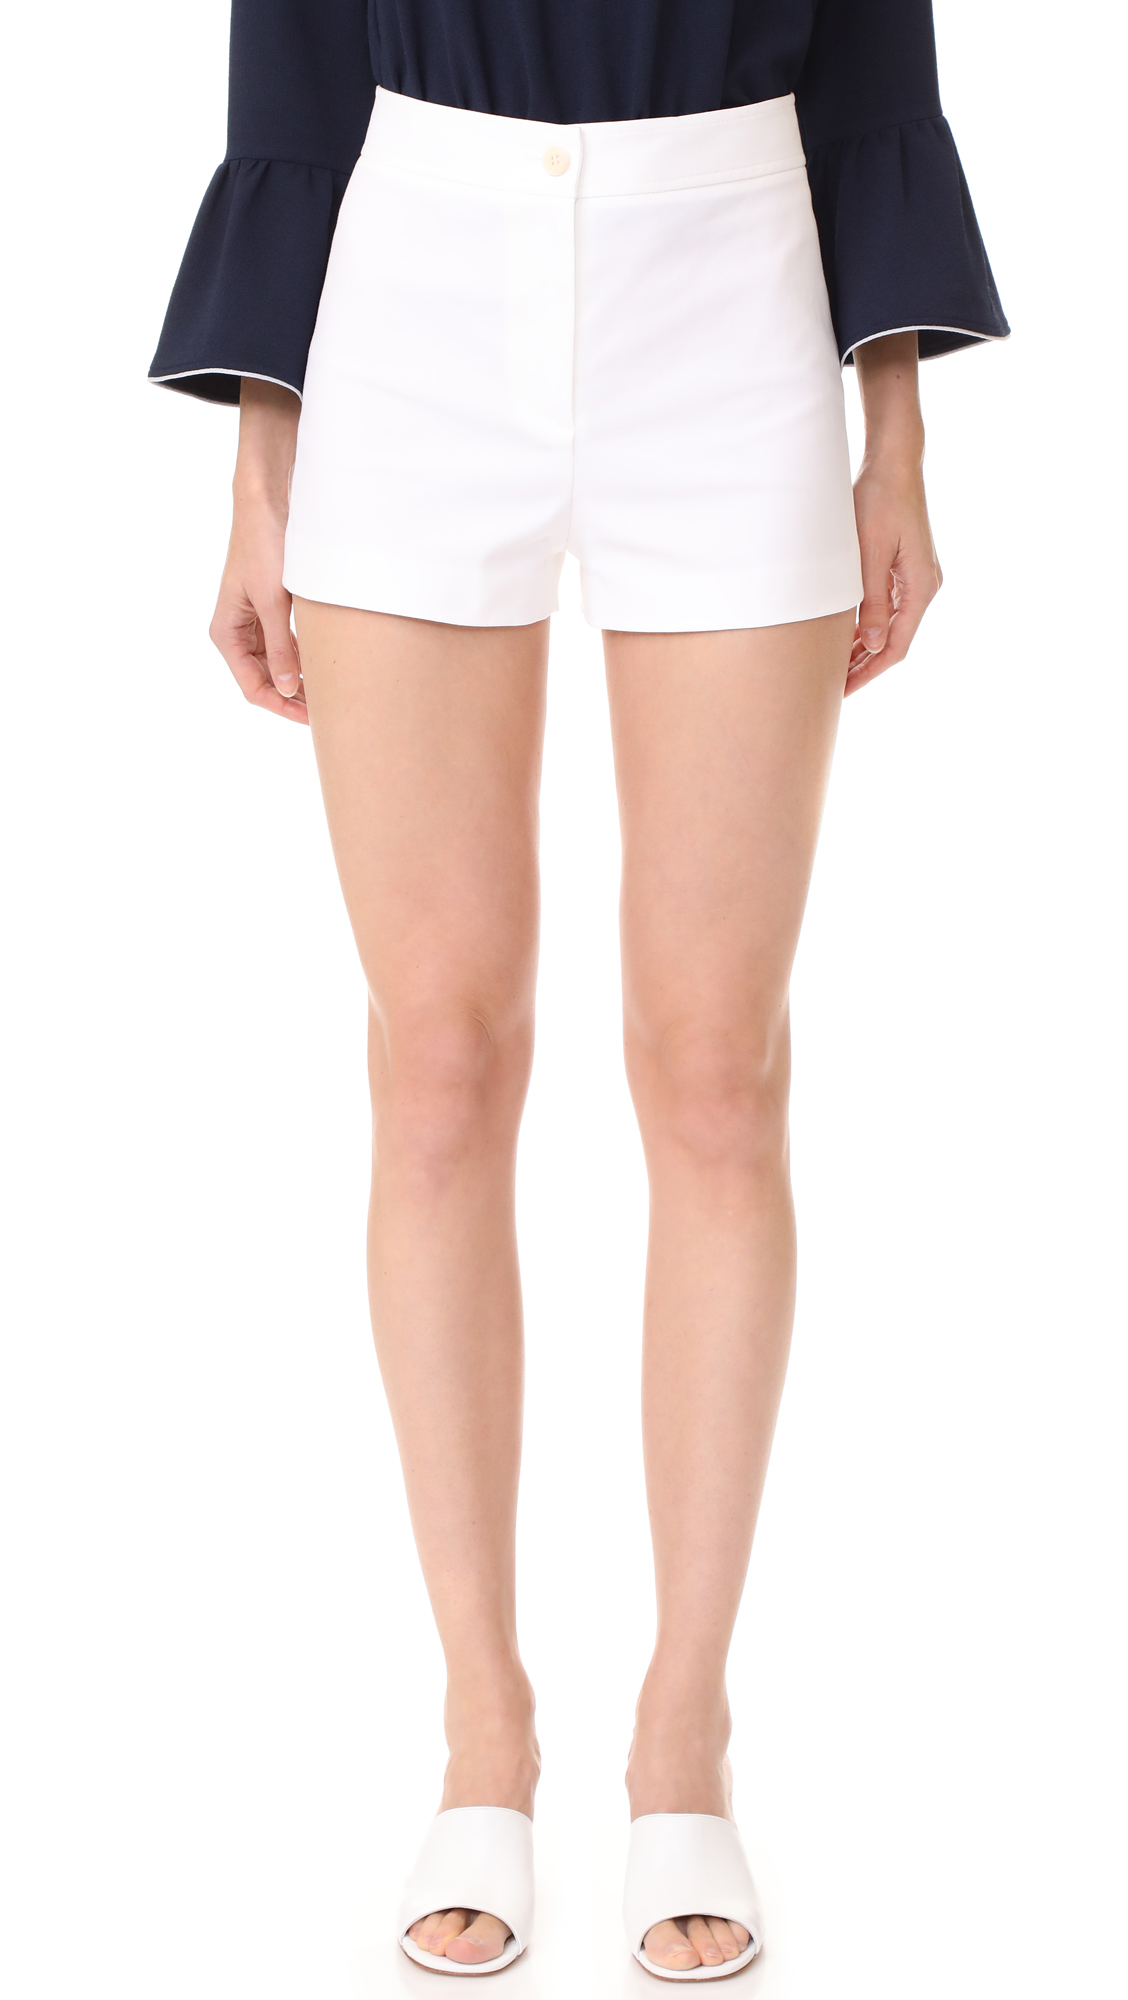 Theory Biquincey Shorts - White